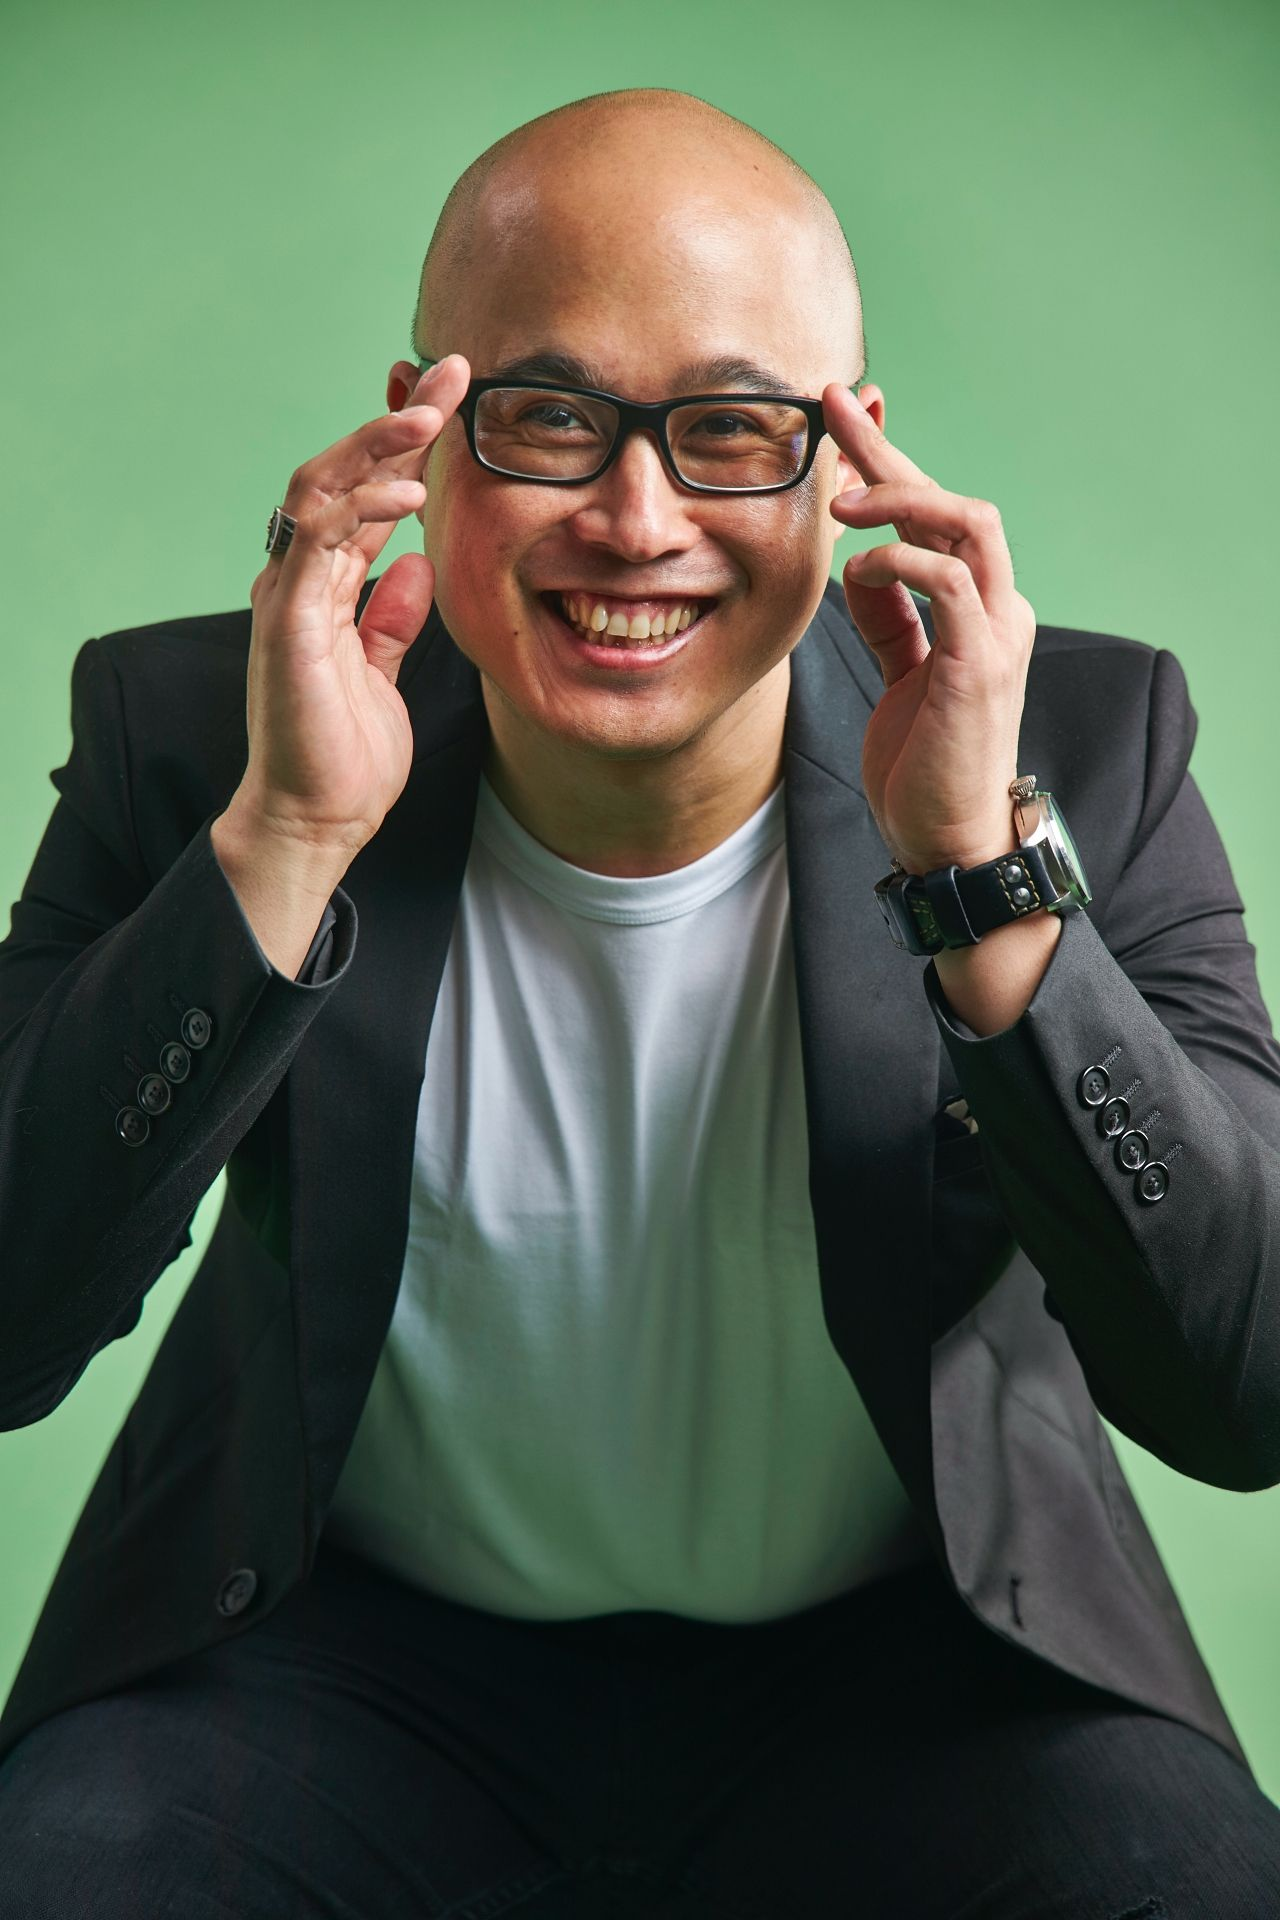 The Founder Of The Philippines' Fastest-Growing Social Media App On How To Conquer Adversity